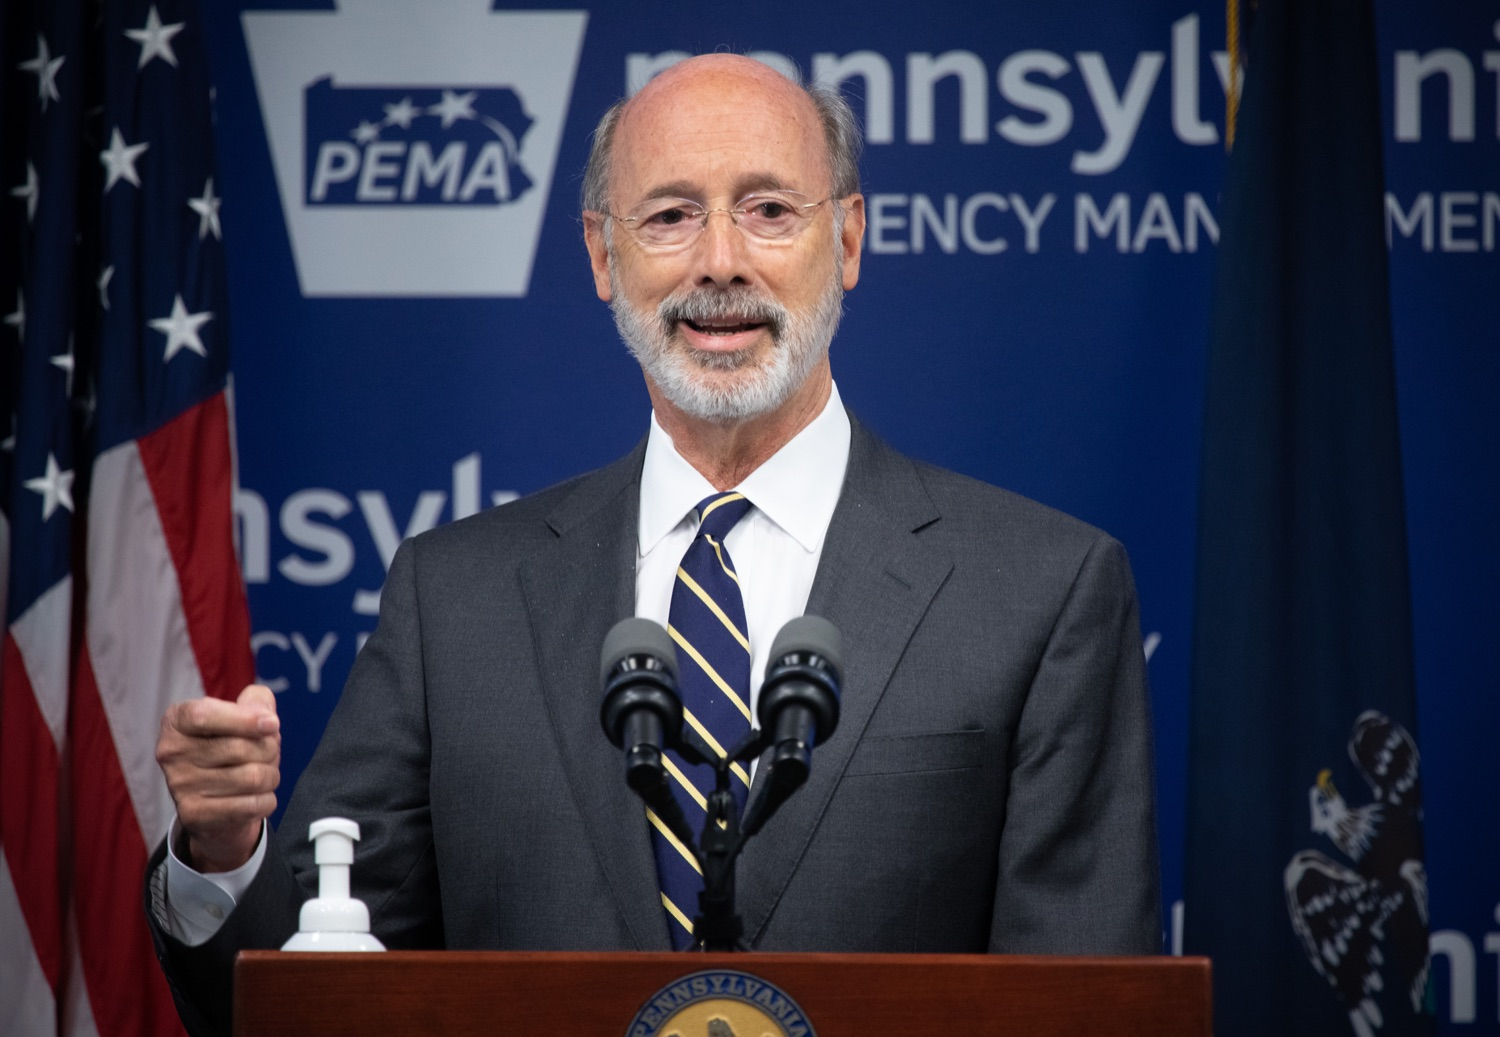 """<a href=""""https://filesource.wostreaming.net/commonwealthofpa/photo/18165_GOV_covid_mitigation_dz_02.jpg"""" target=""""_blank"""">⇣Download Photo<br></a>Pennsylvania Governor Tom Wolf speaking with the press. Governor Tom Wolf and Sec. of Health Dr. Rachel Levine today signed new orders for targeted mitigation efforts in response to the recent rise in COVID cases, primarily in southwest Pennsylvania, but also in other counties in the state, influencing the decision for statewide mitigation efforts for bars and restaurants, gatherings and telework. The new orders take effect at 12:01 a.m., Thursday, July 16, 2020.  Harrisburg, - July 15, 2020"""